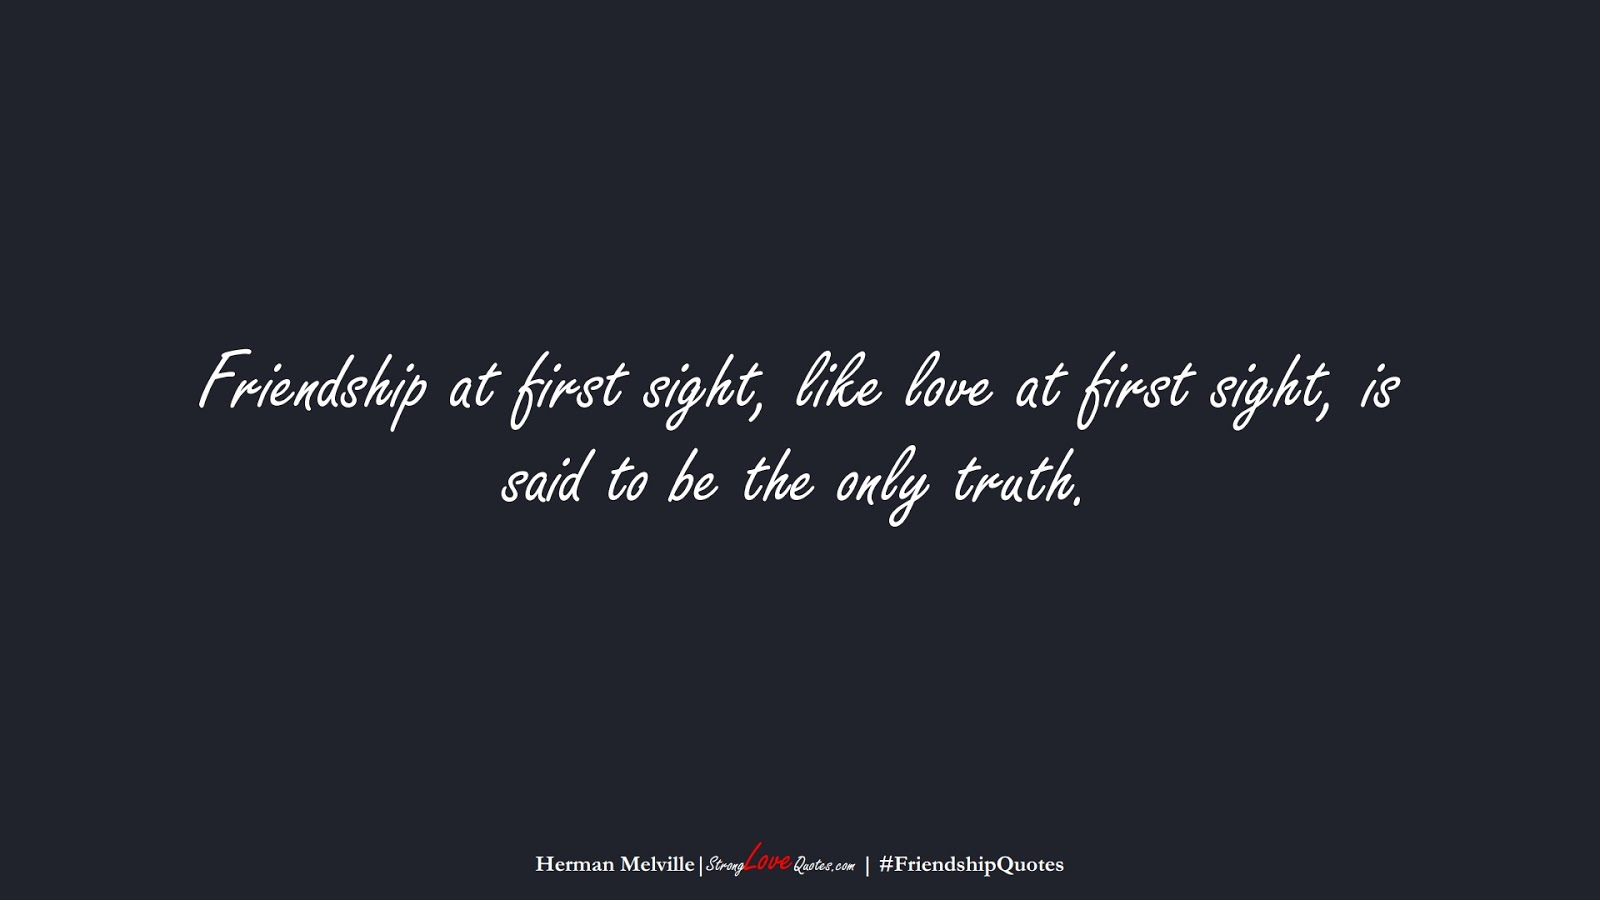 Friendship at first sight, like love at first sight, is said to be the only truth. (Herman Melville);  #FriendshipQuotes